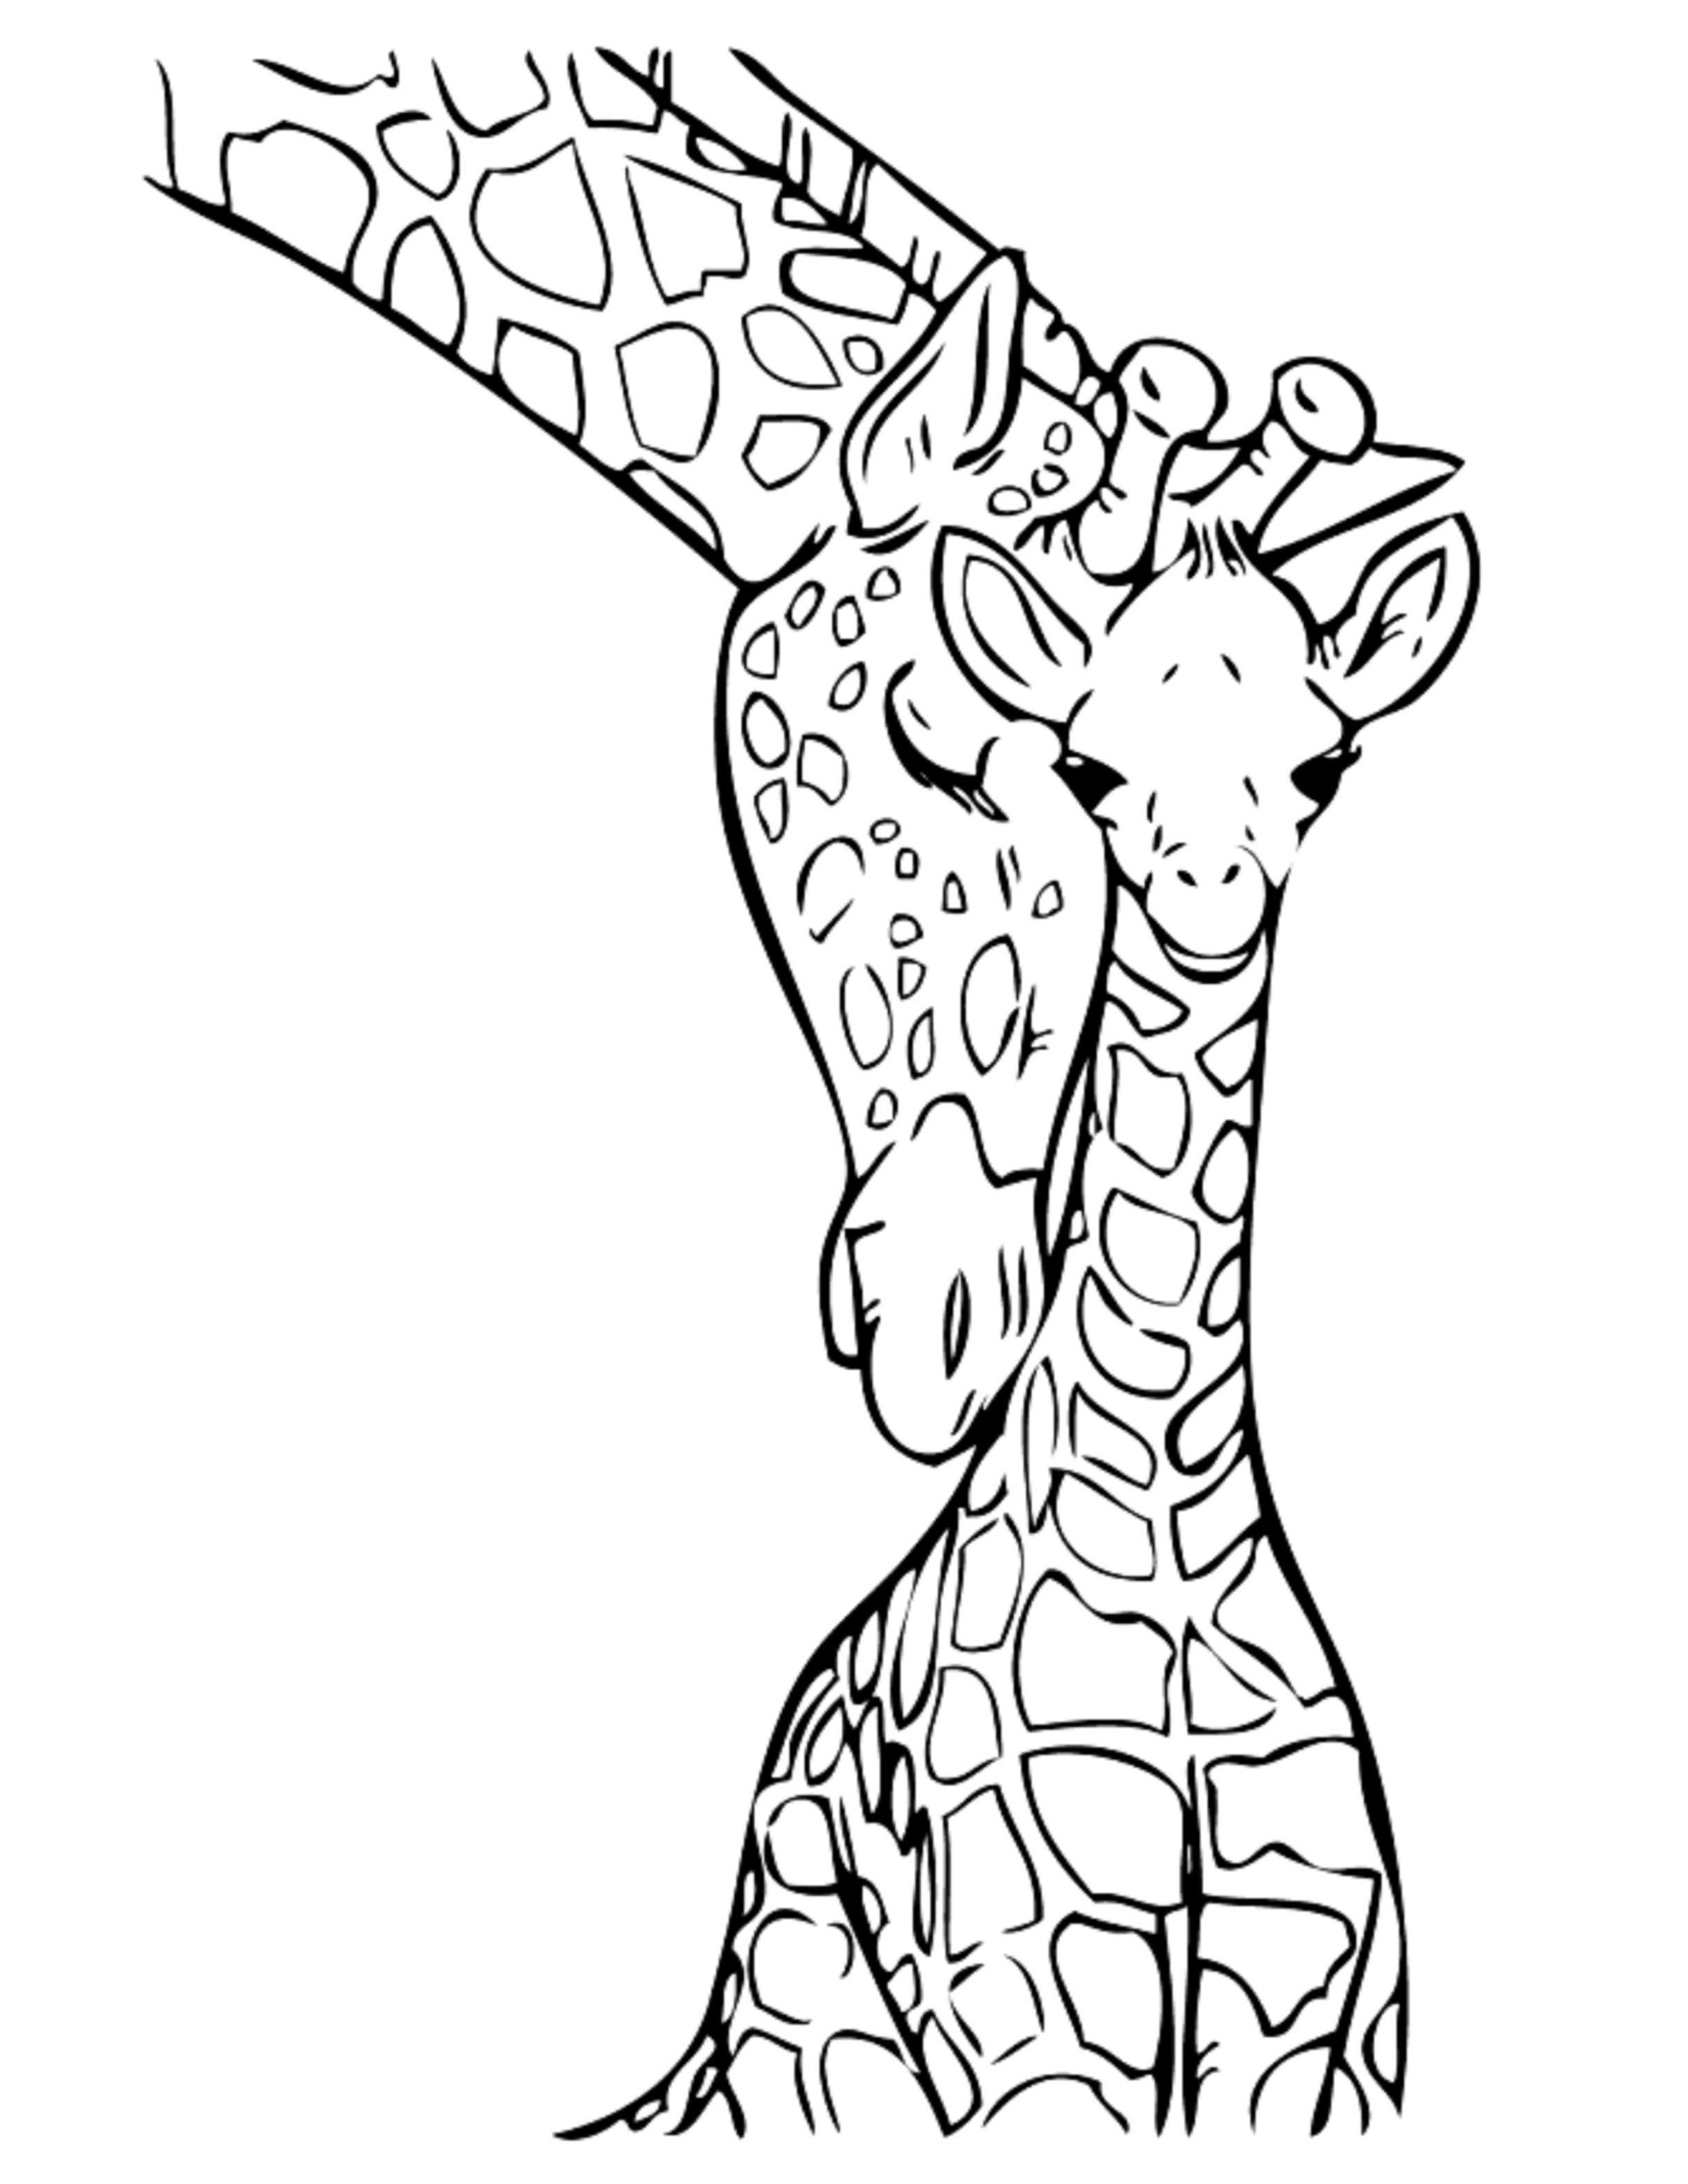 coloring pictures of animals zebra coloring pages free printable kids coloring pages pictures coloring of animals